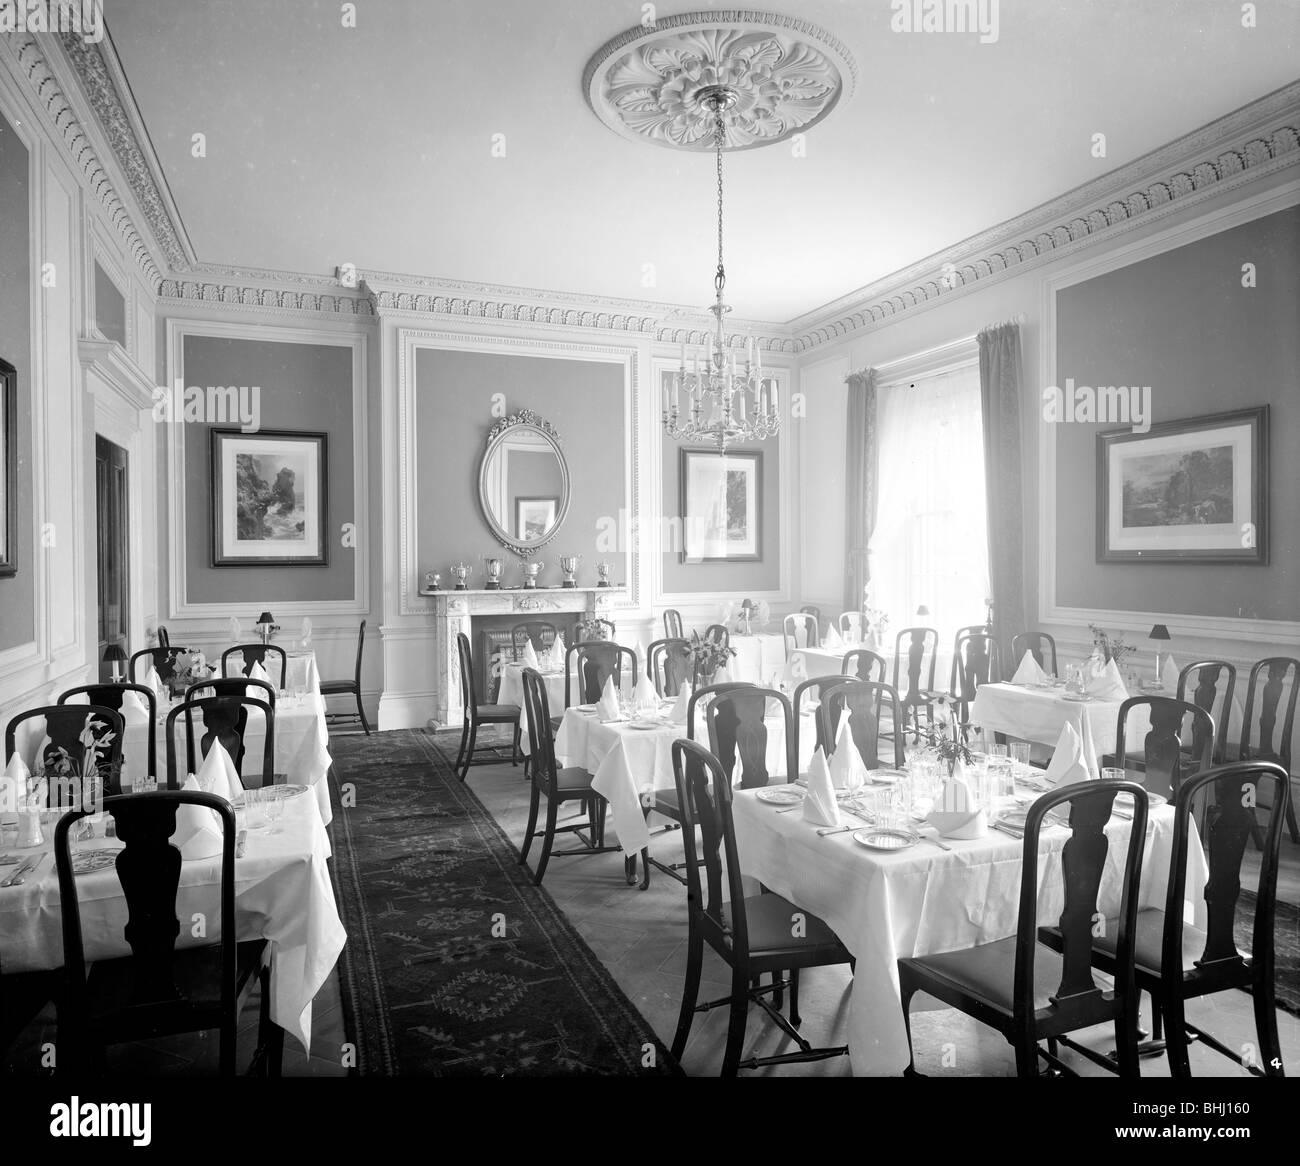 Dining Room, North Cray Place, Bexley, London, 1908. Artist: